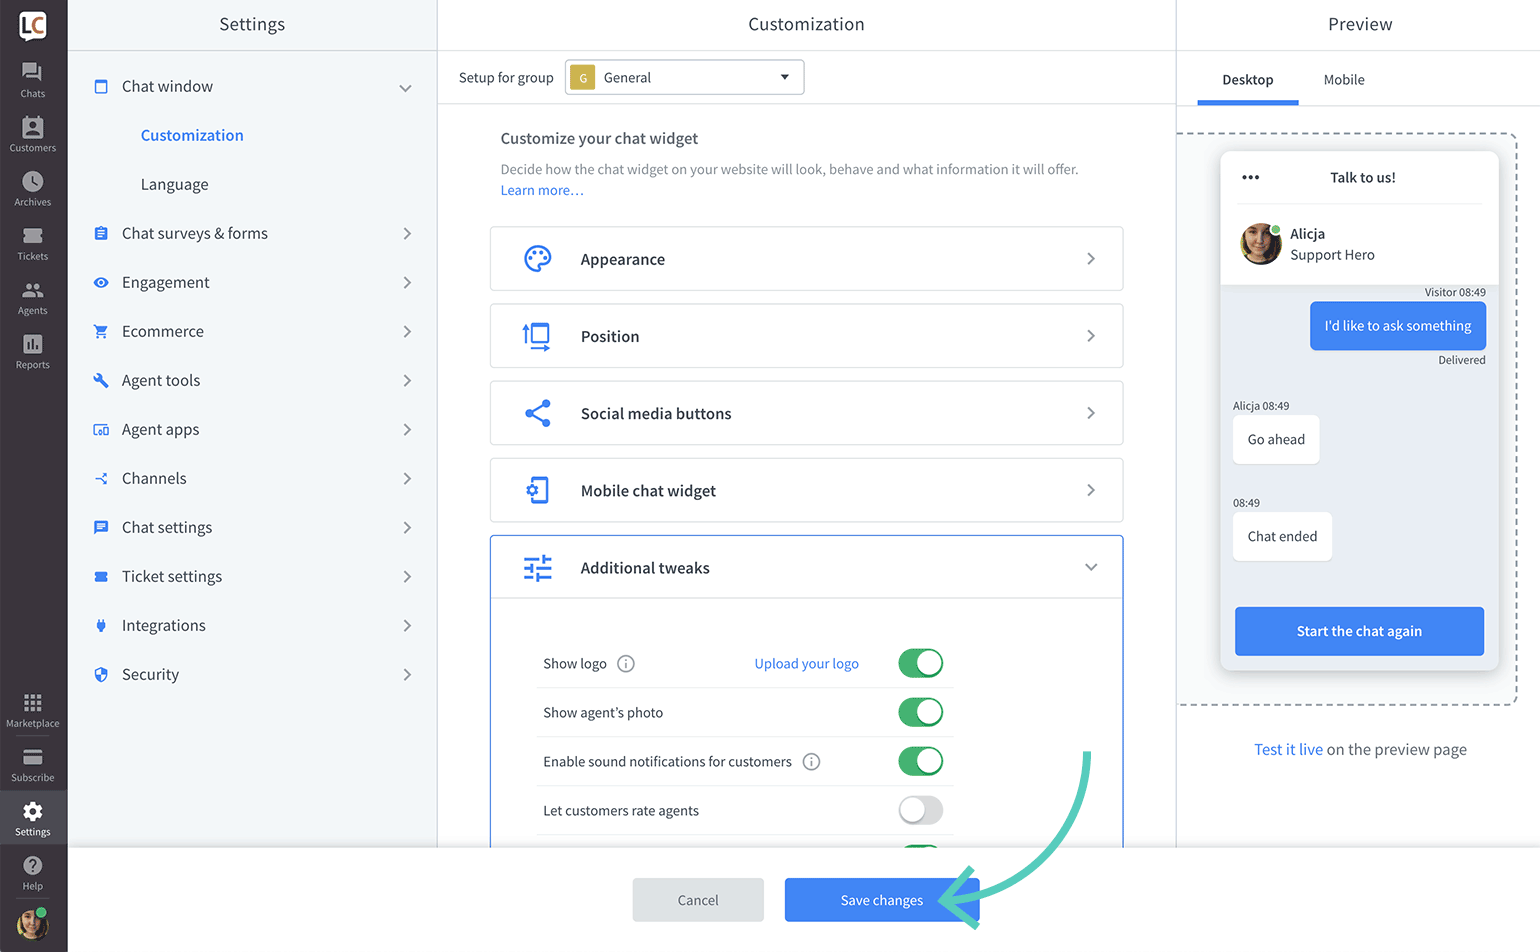 Save changes made to logo in LiveChat settings